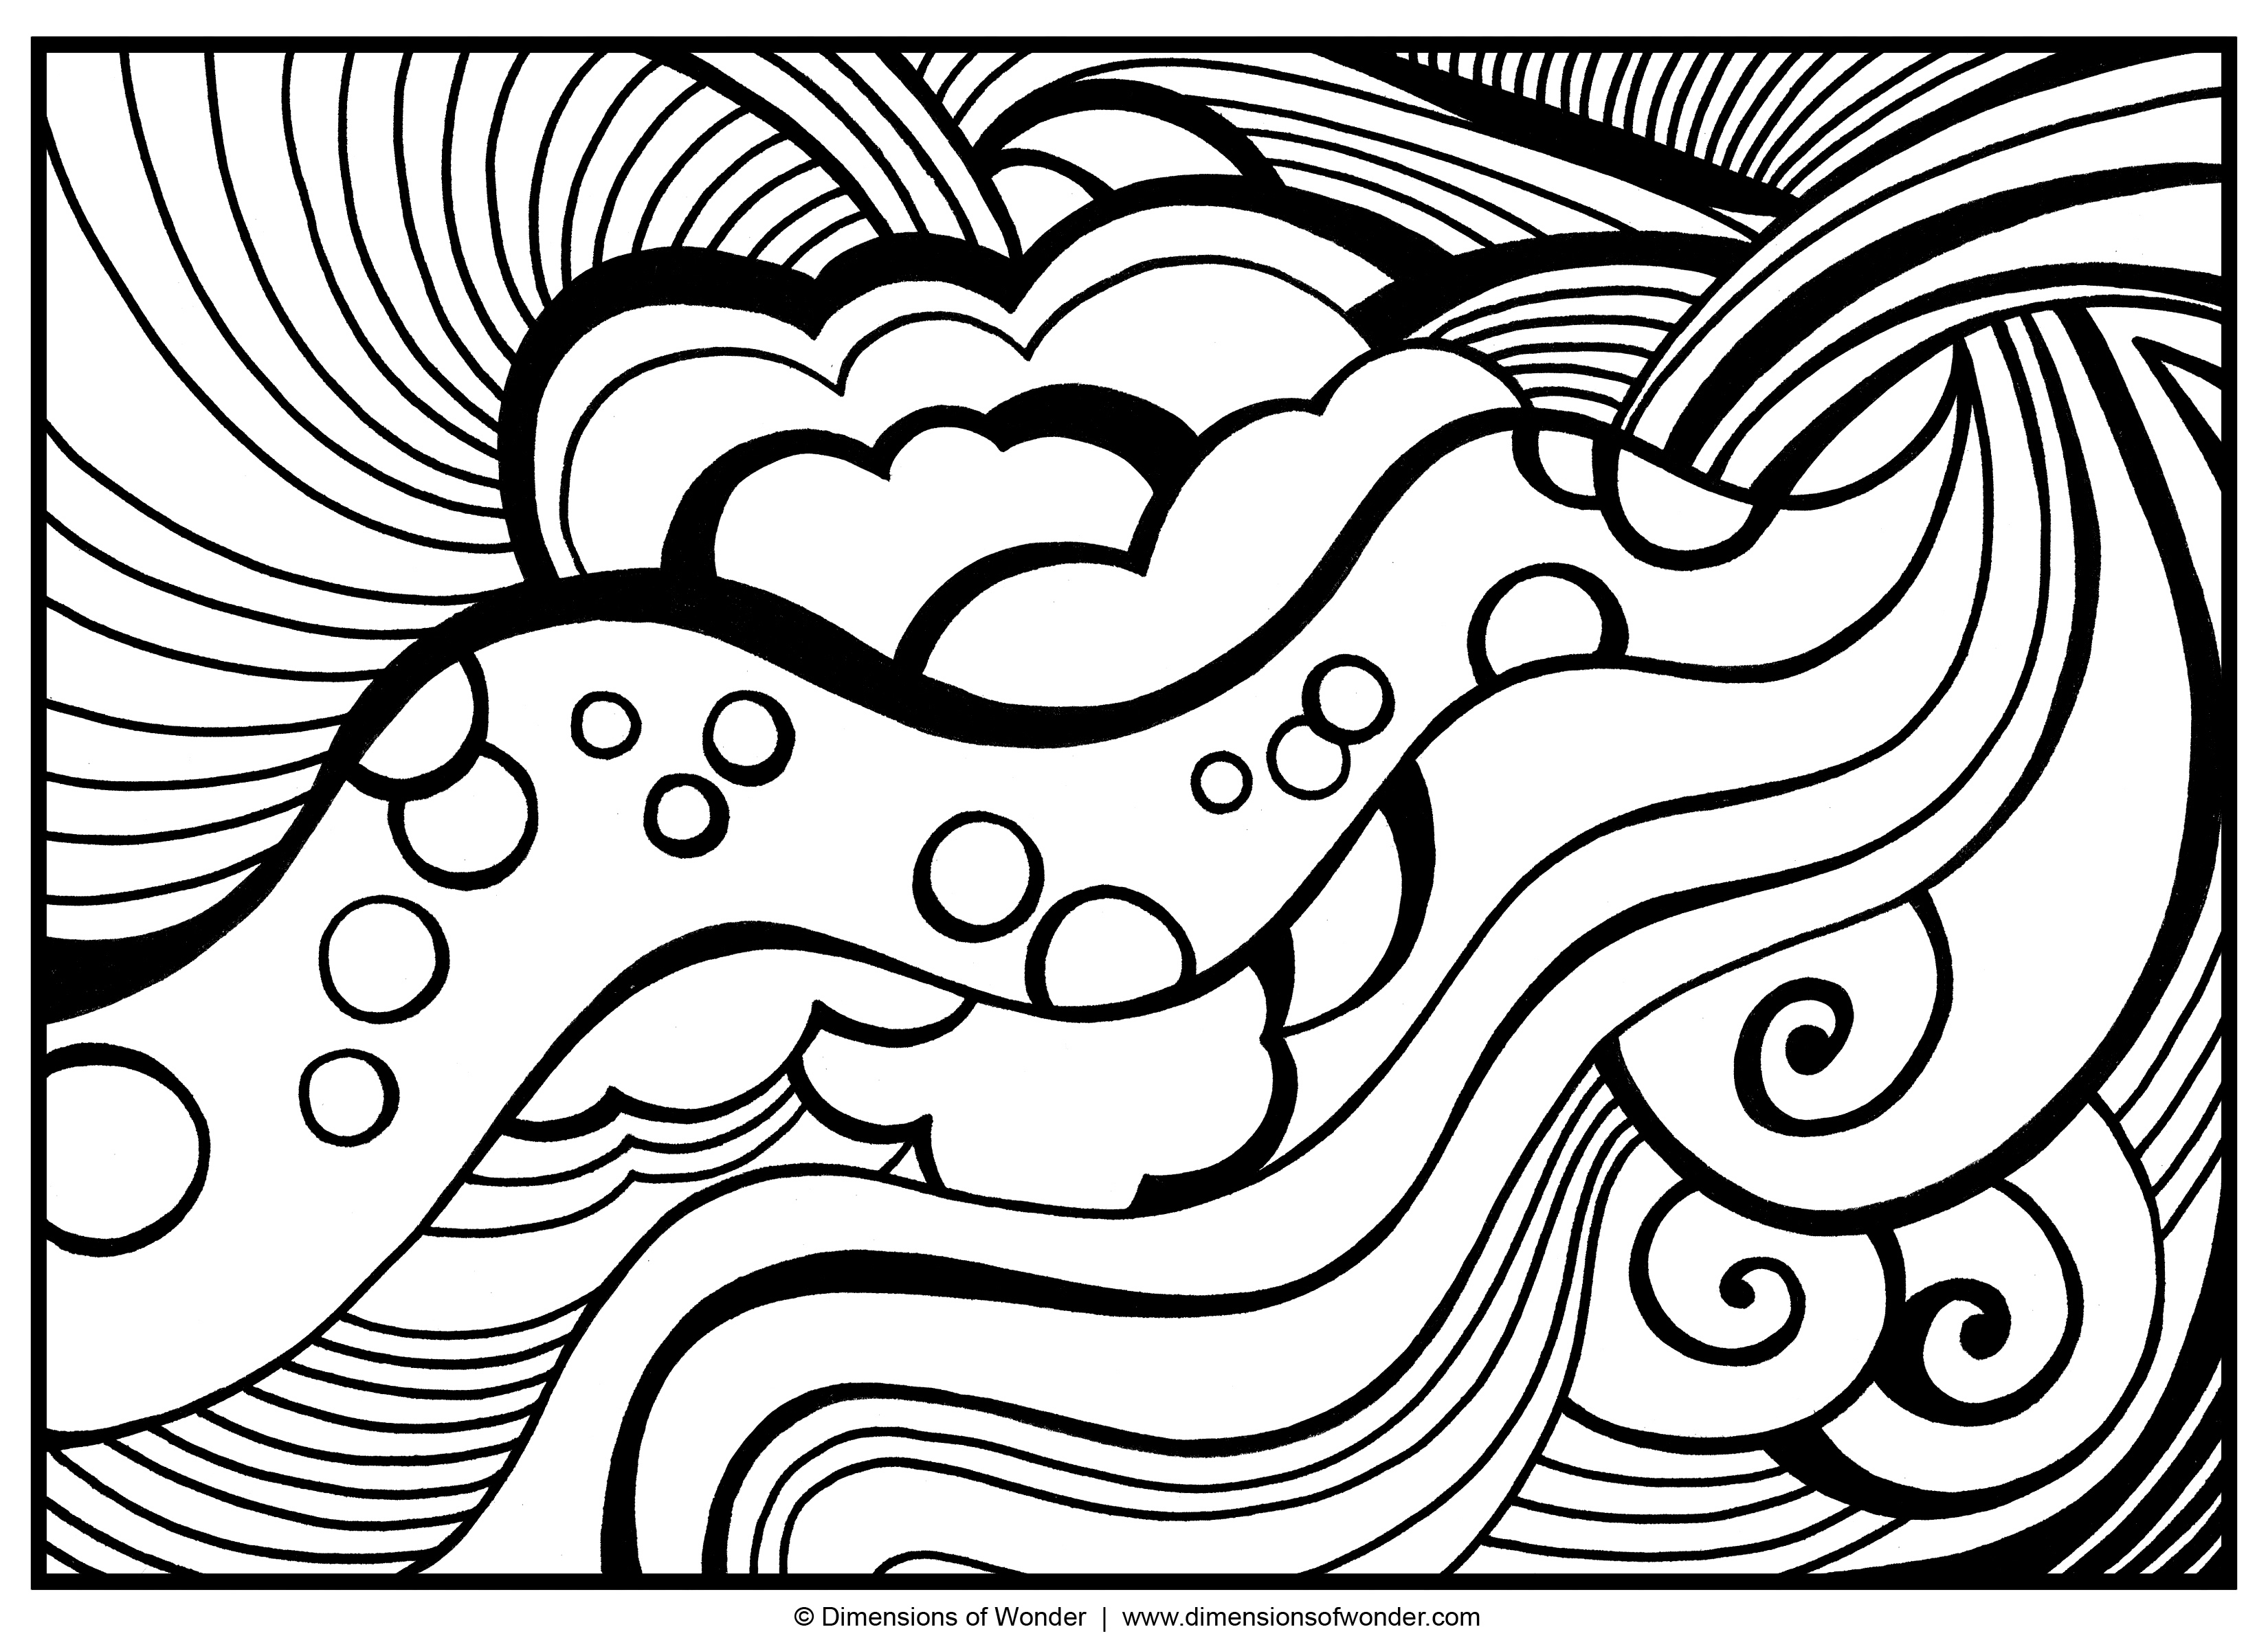 Abstract Drawing For Kids At Getdrawings Com Free For Personal Use